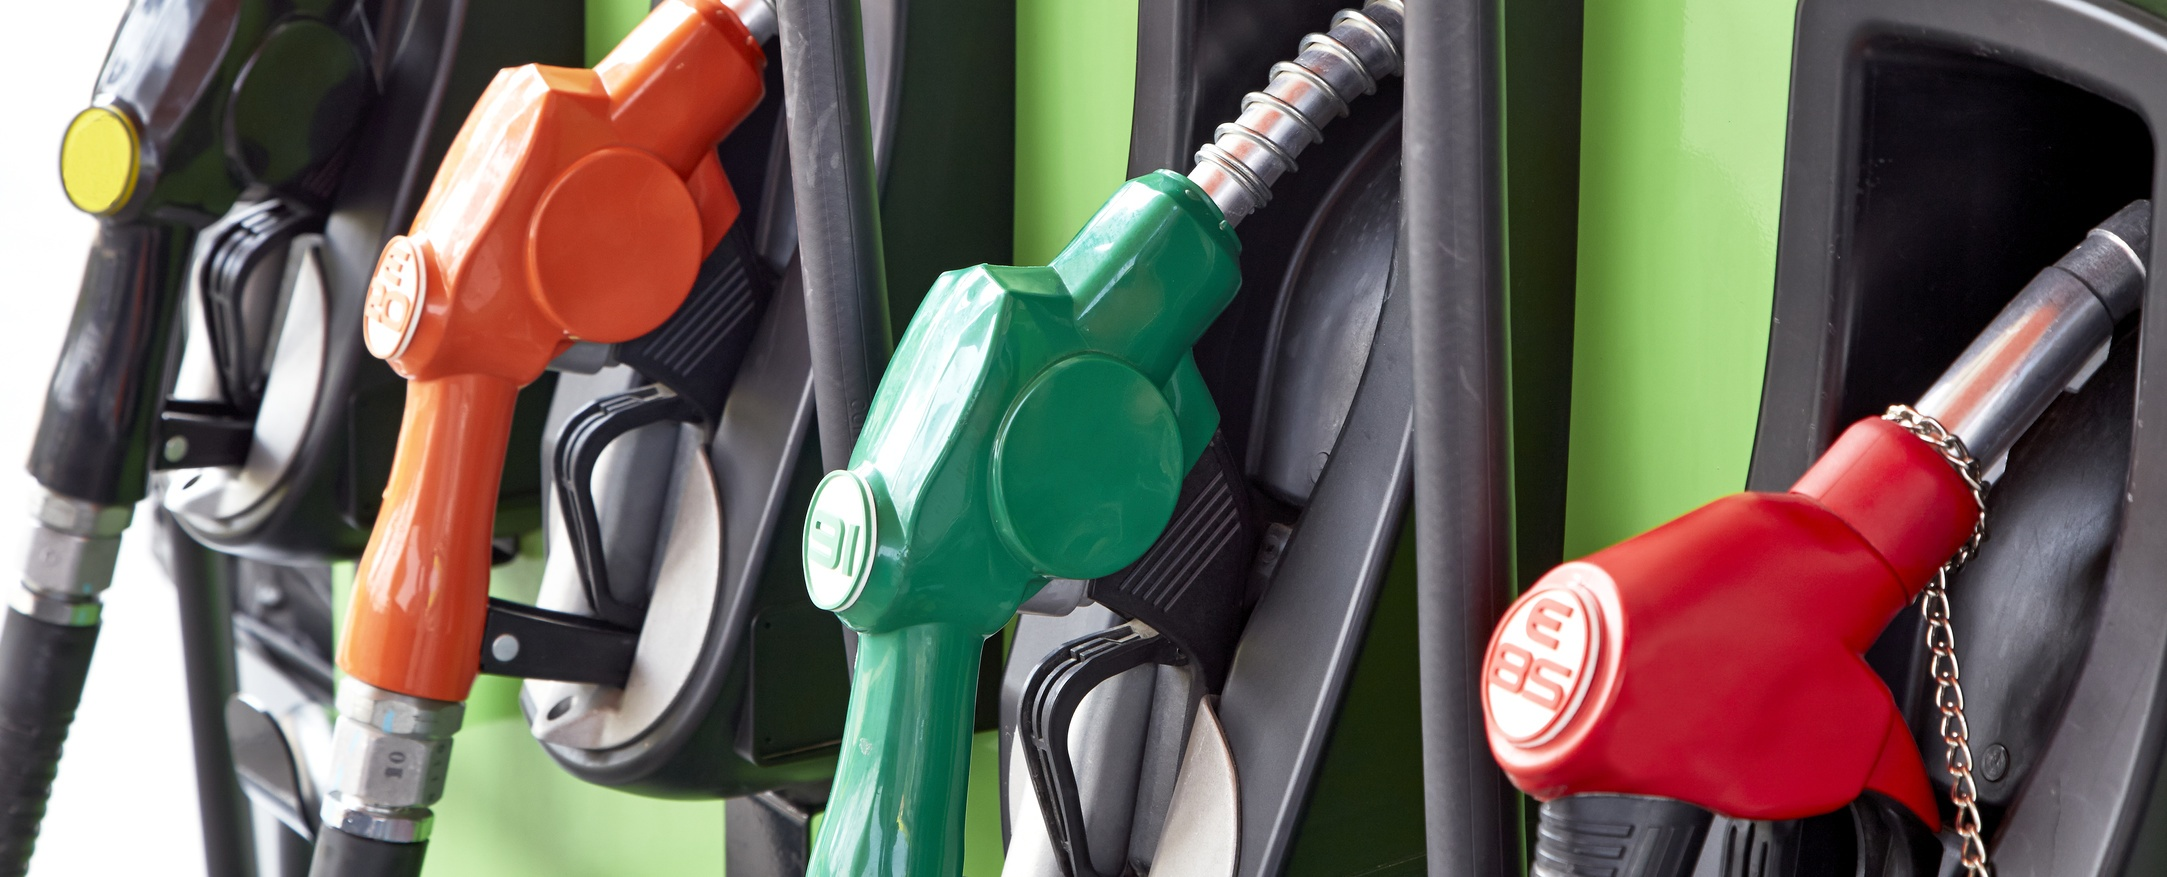 Municipalities feel the pain at the pump just as much as the average citizen.